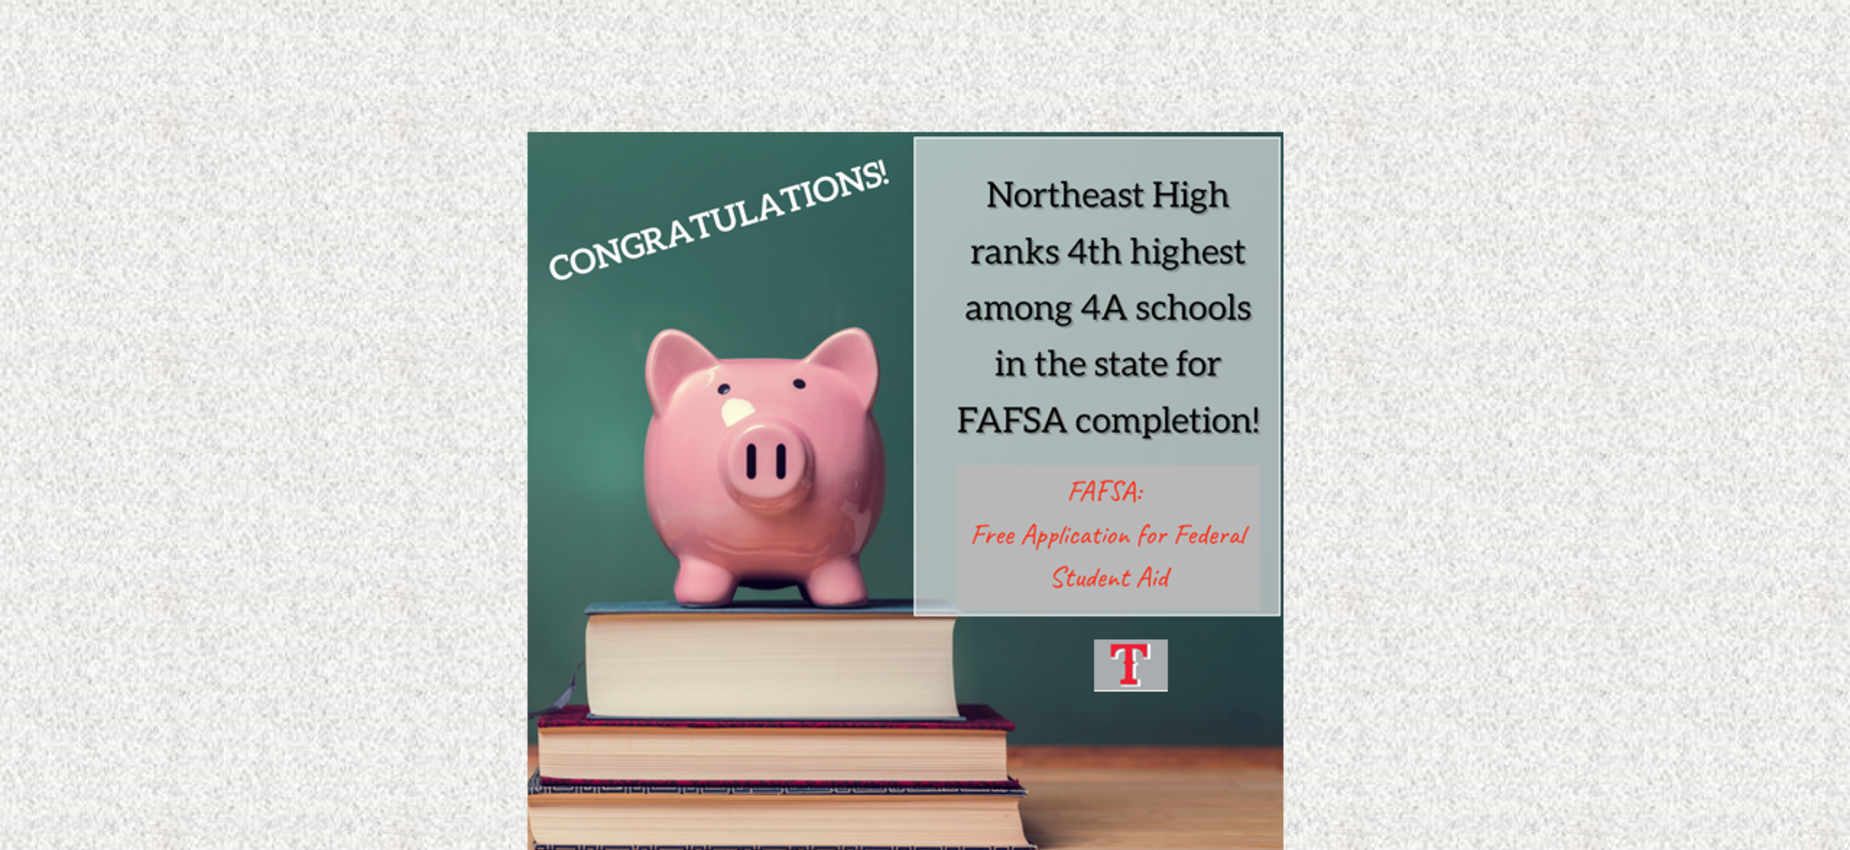 Congratulations to Northeast High for ranking 4th highest among 4A schools in Mississippi for the FAFSA (Free Application for Federal Student Aid) completion.